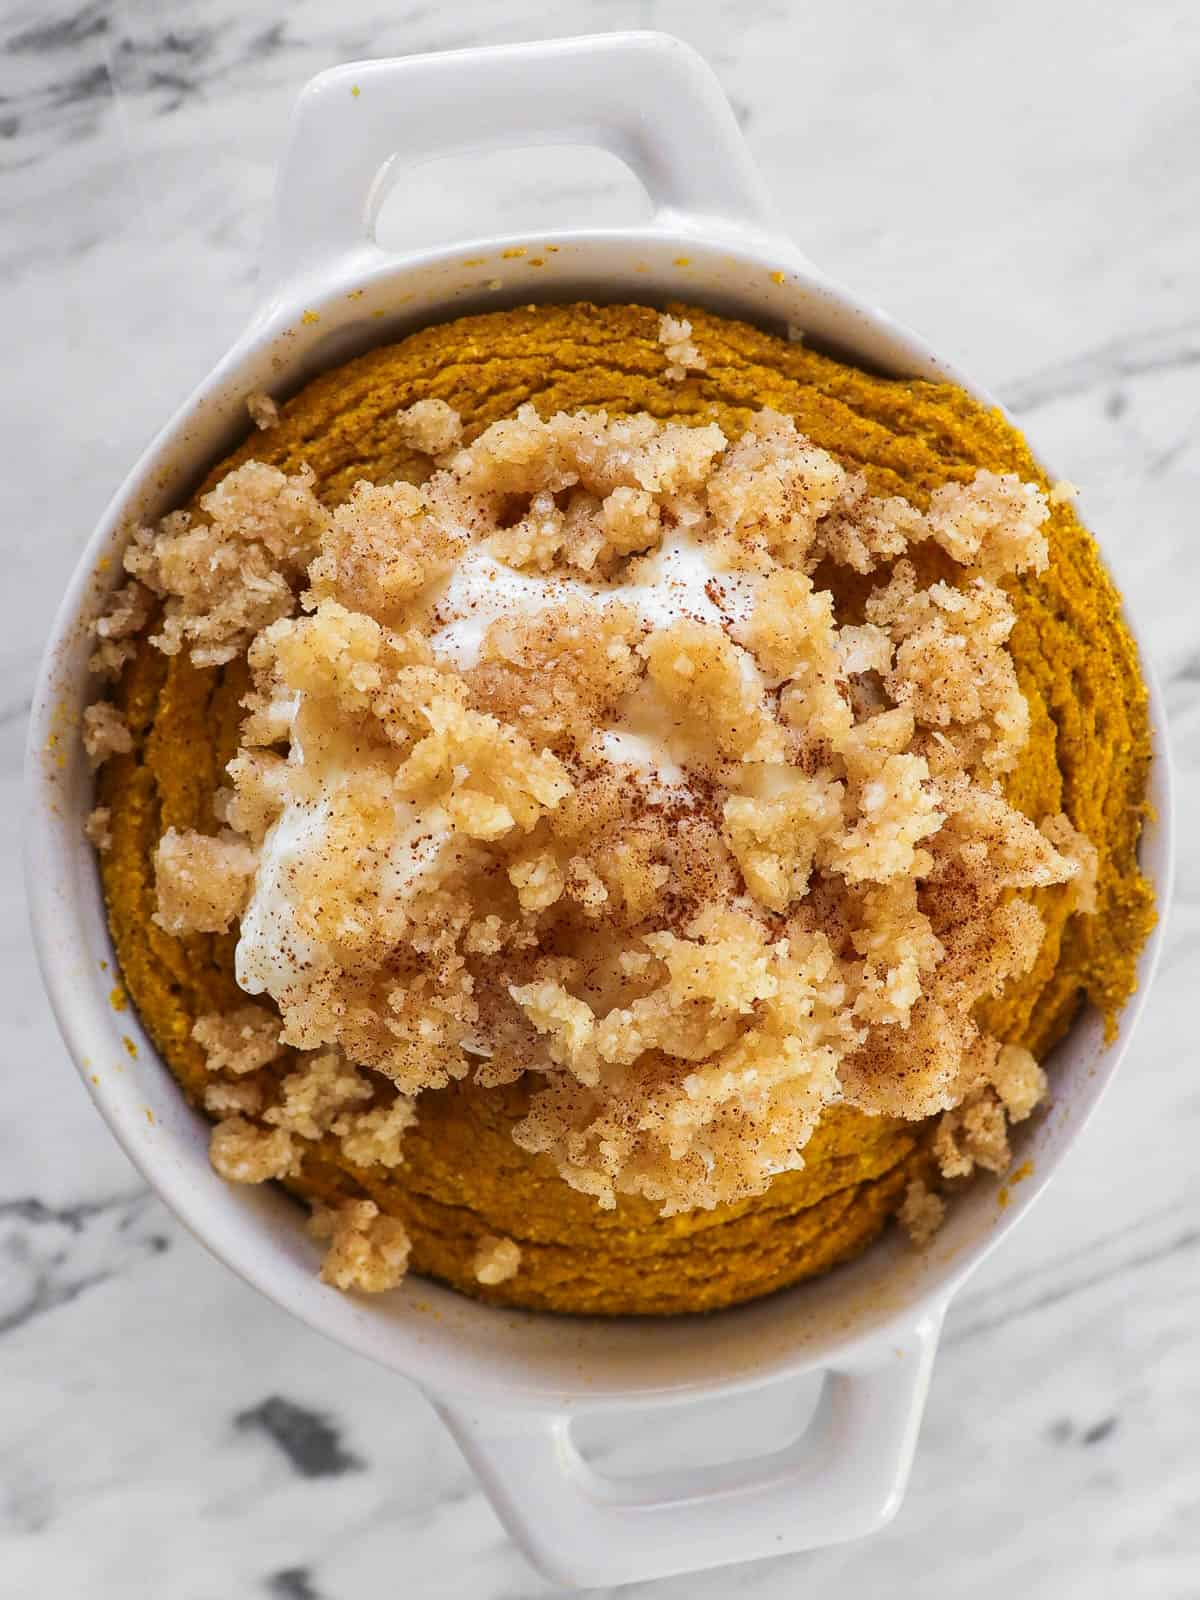 Cooked pumpkin mug cake with toppings.